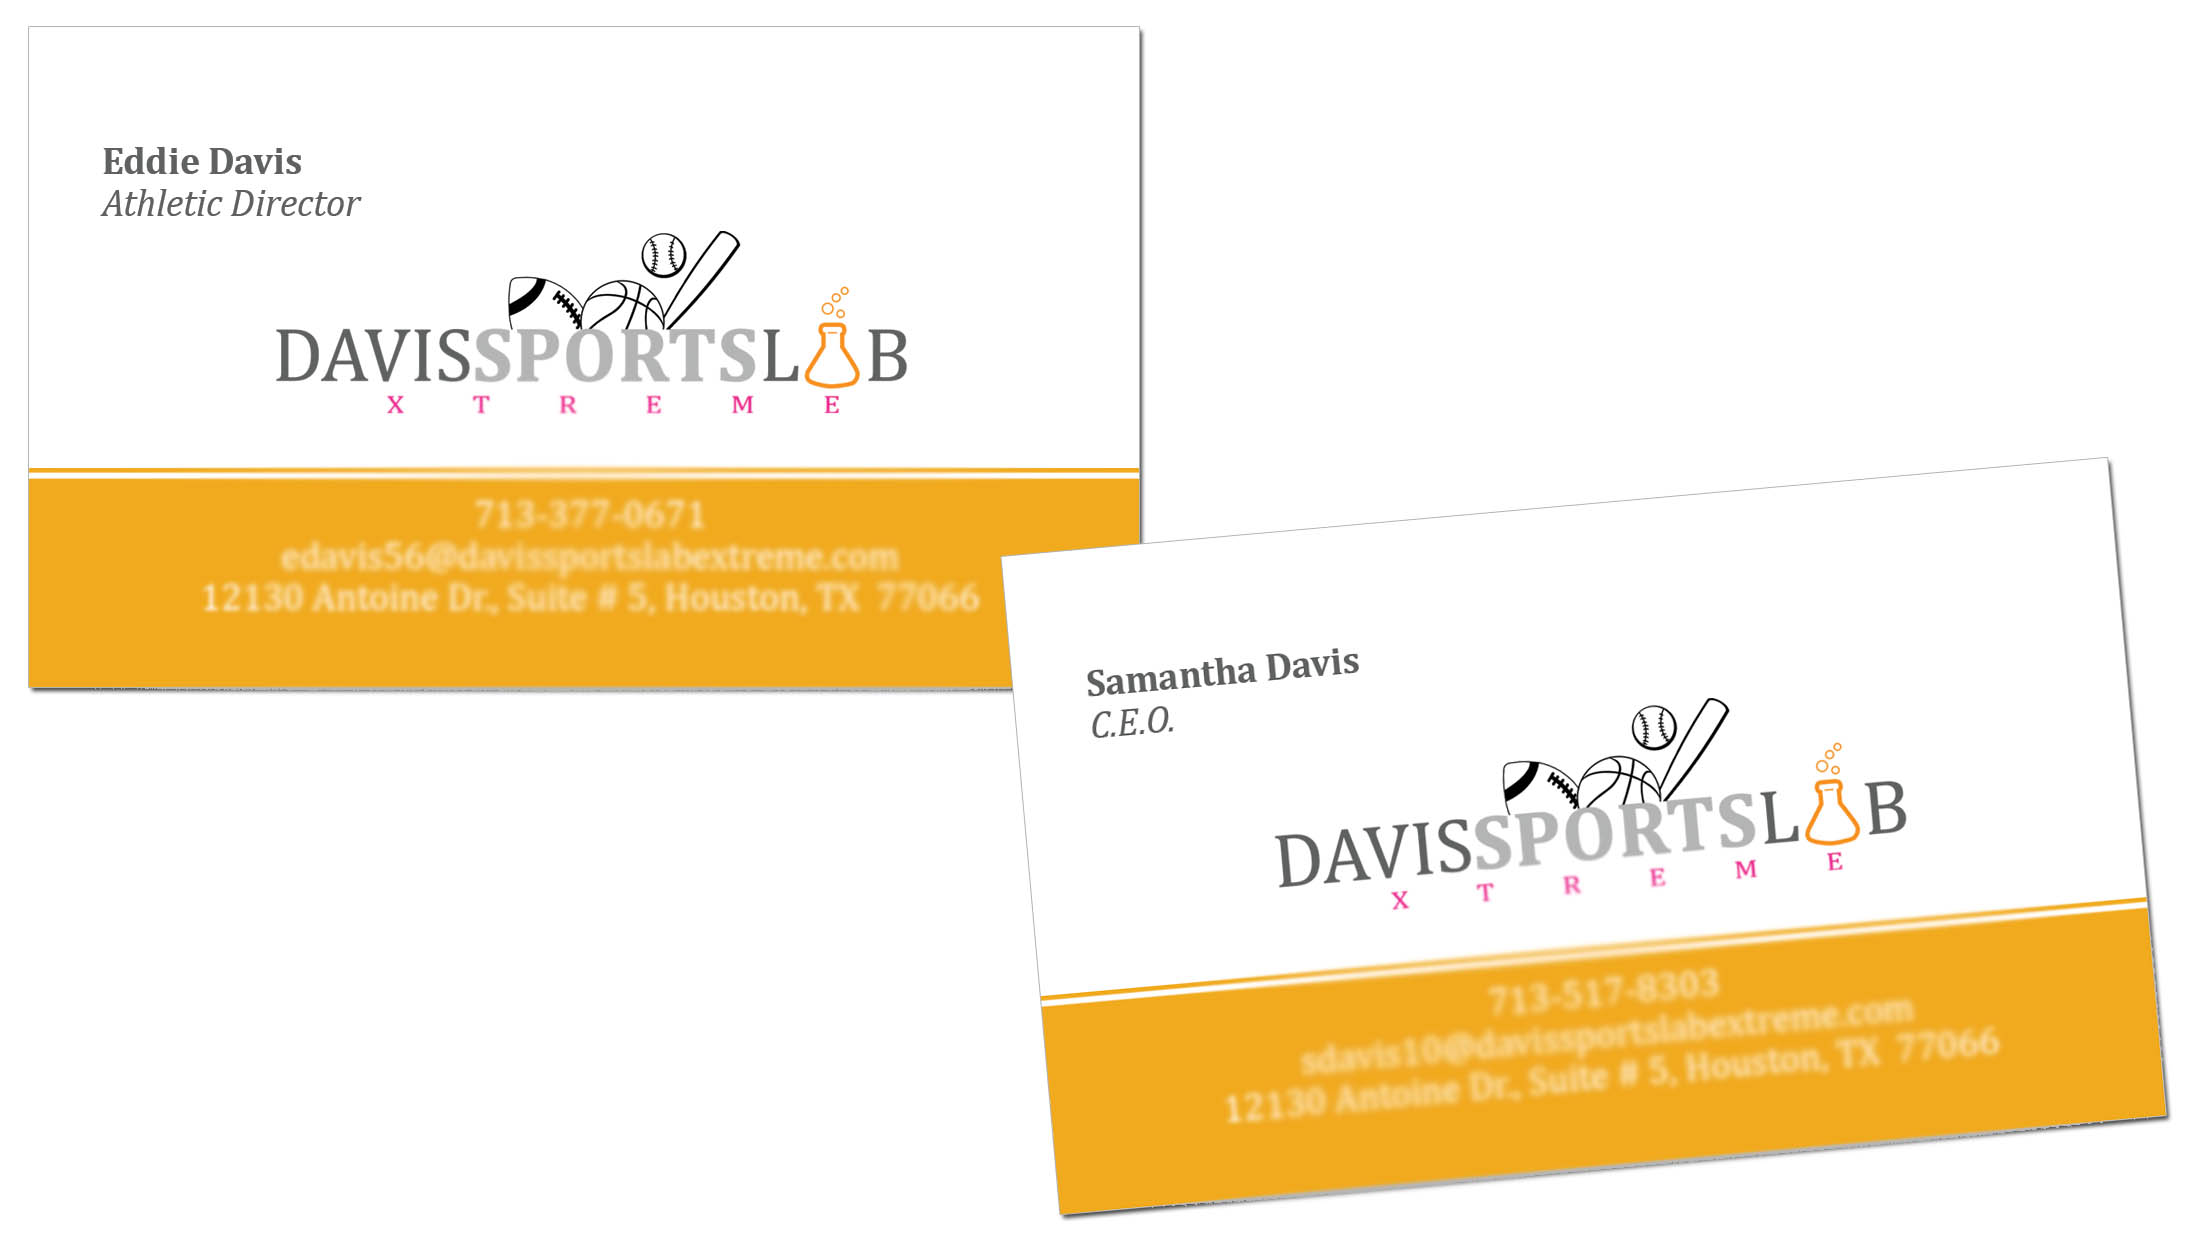 davis sports lab xtreme logo business cards